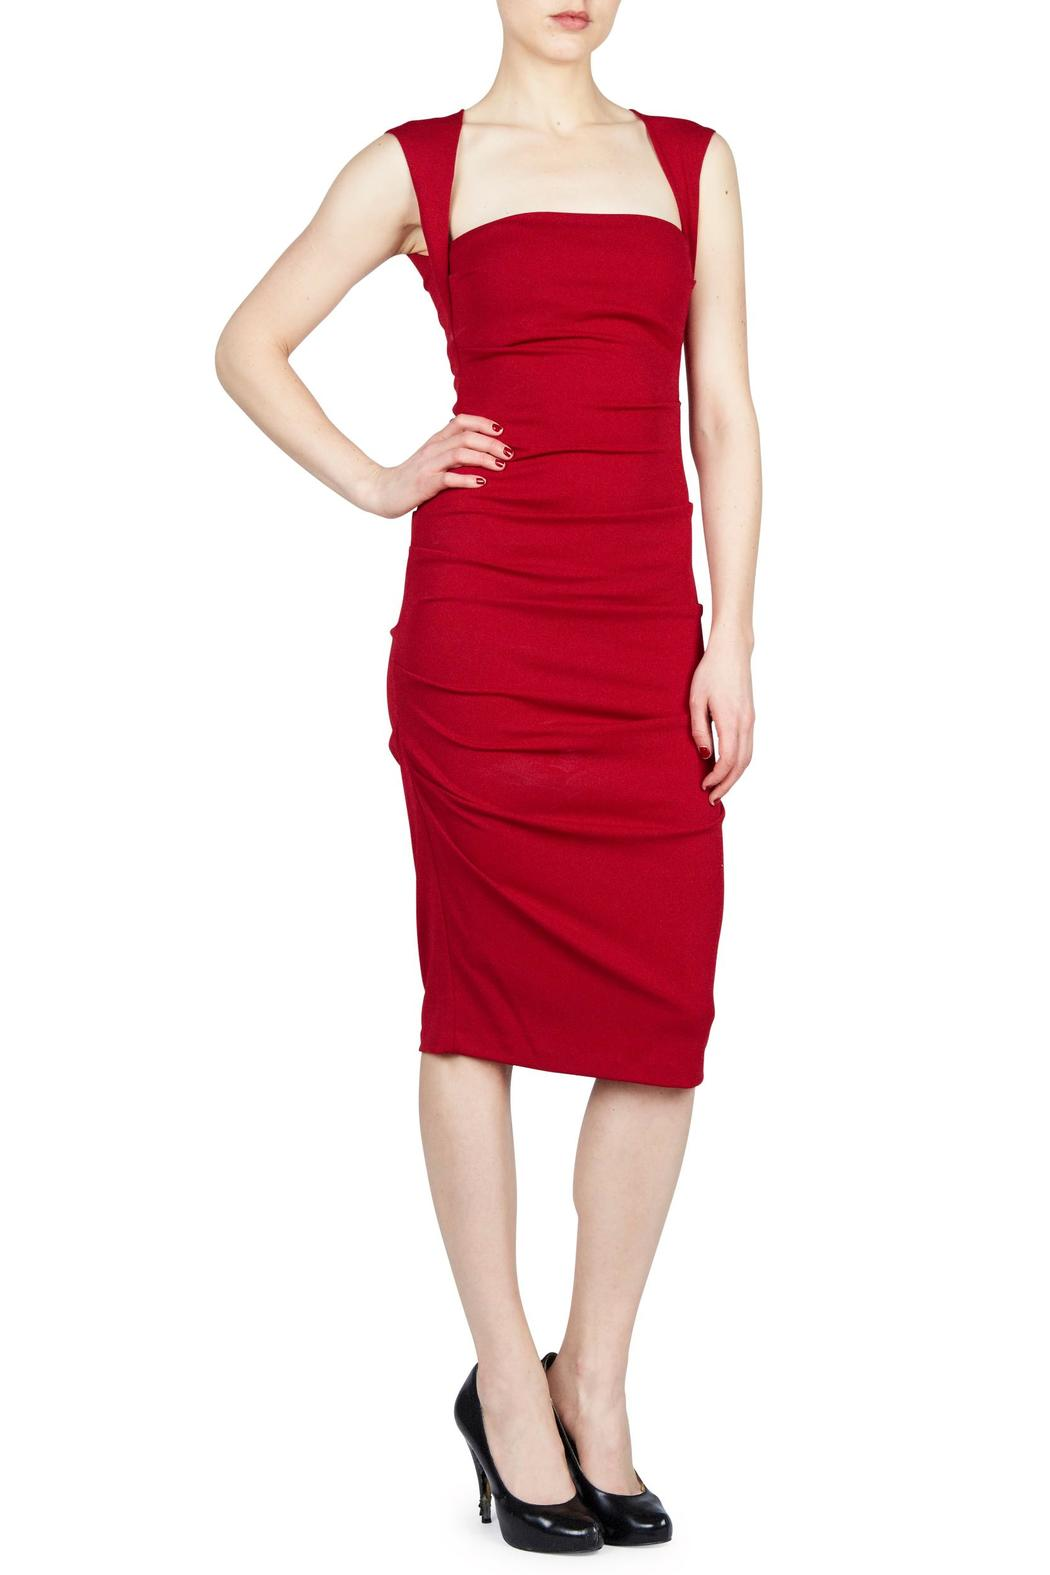 Nicole Miller Felicity Stretch Jersey Dress - Main Image